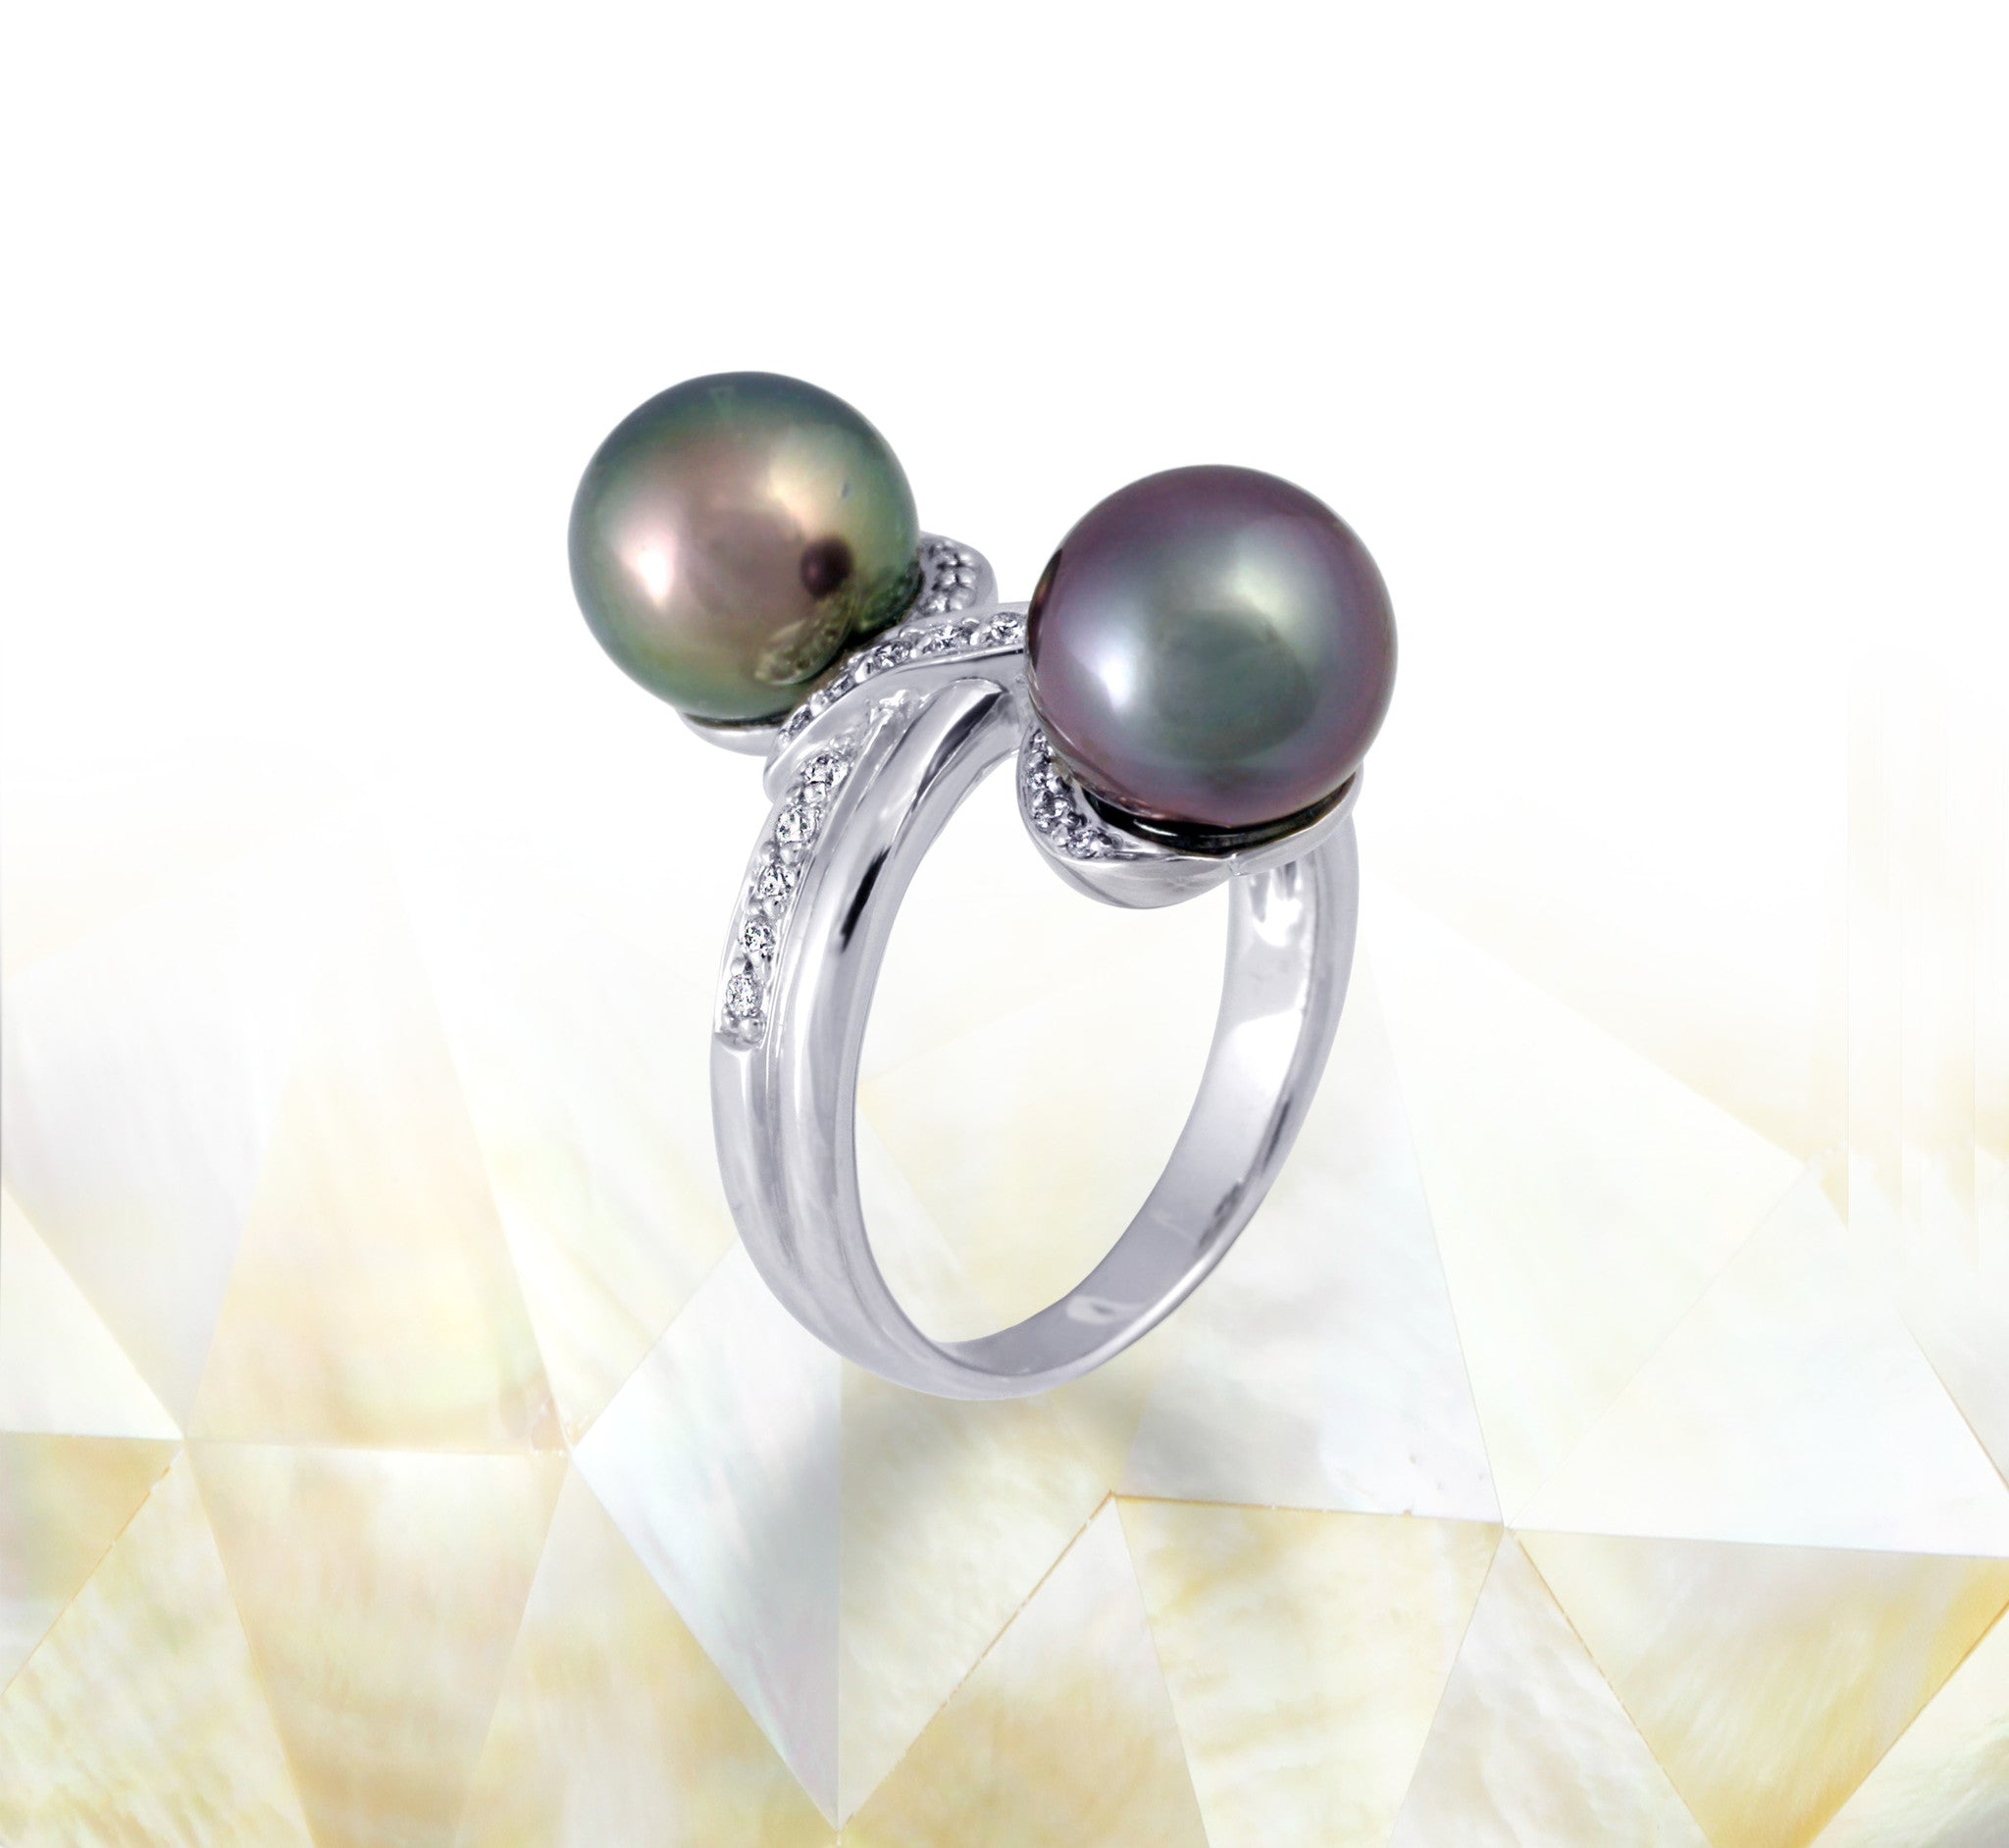 Tahitian pearl ring - 18K white gold with Diamonds - RGWDPE00660